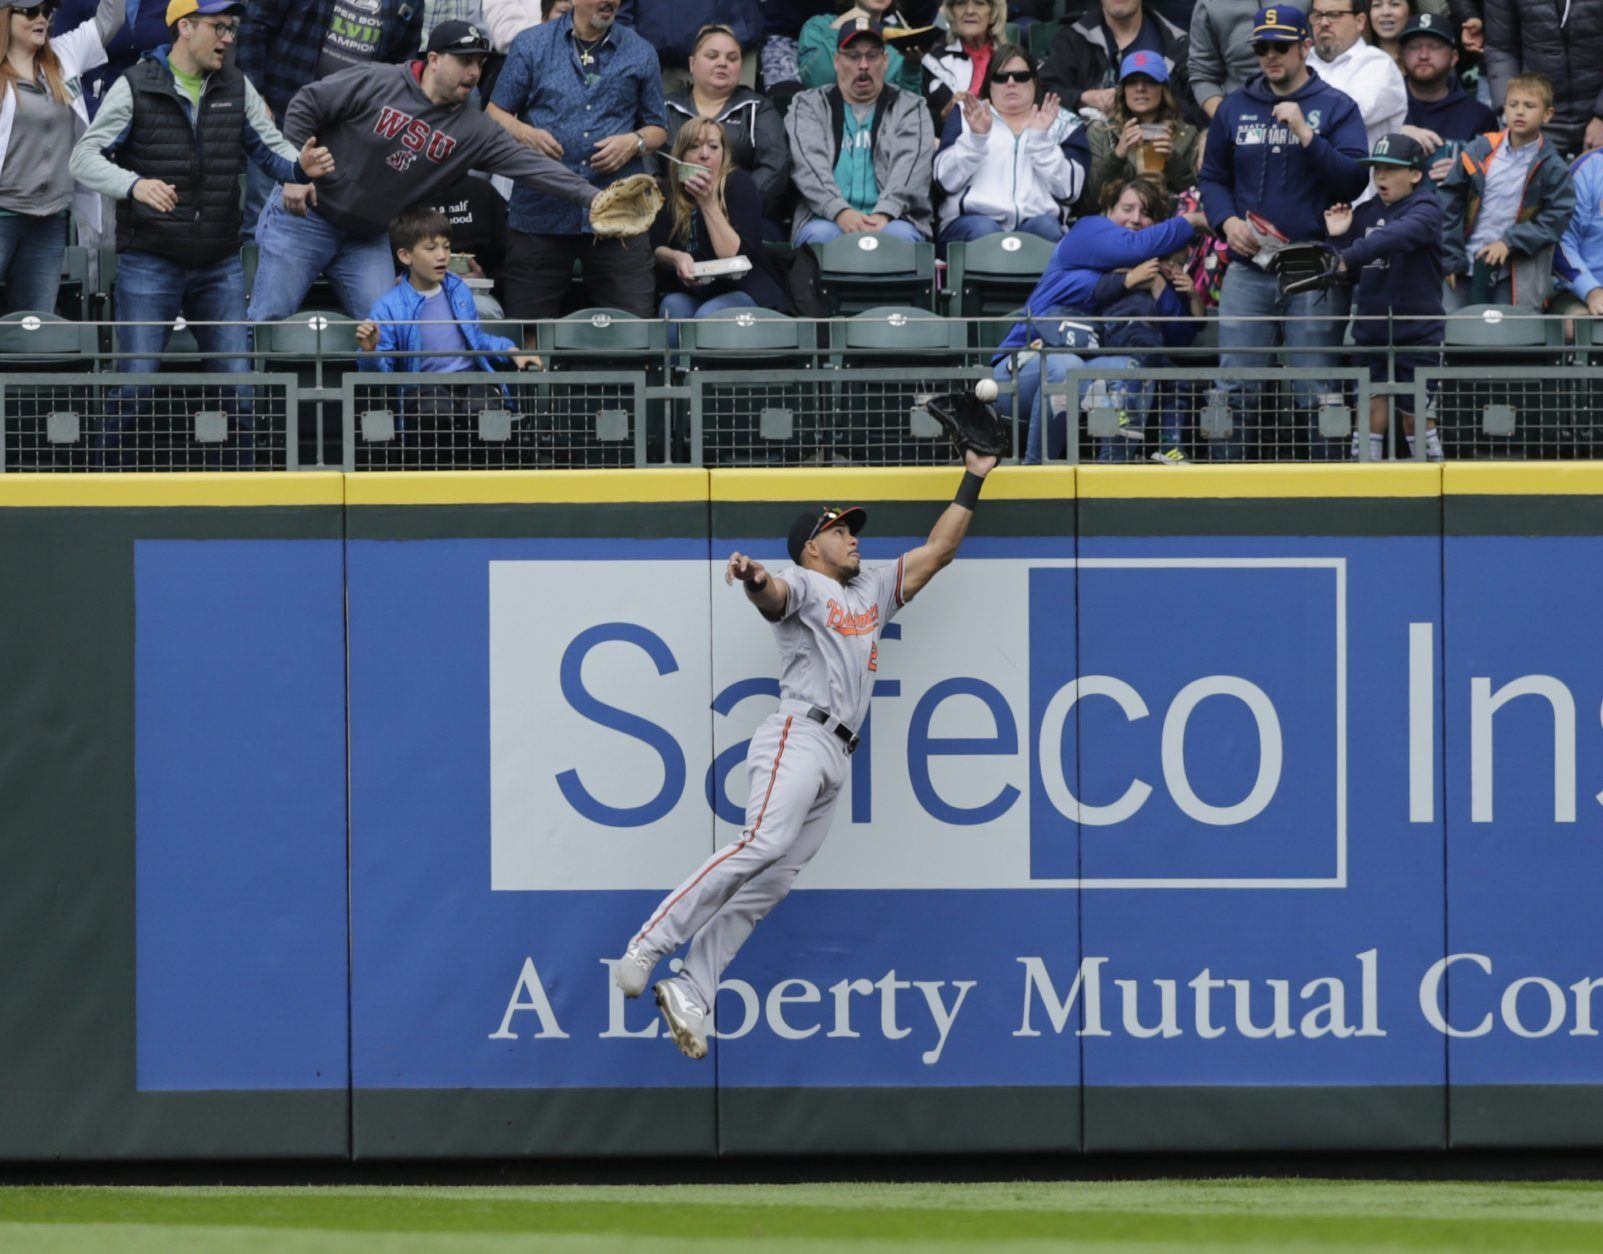 Baltimore Orioles right fielder Anthony Santander leaps to catch a fly ball hit by Seattle Mariners' Domingo Santana during the first inning of a baseball game, Sunday, June 23, 2019, in Seattle. (AP Photo/John Froschauer)